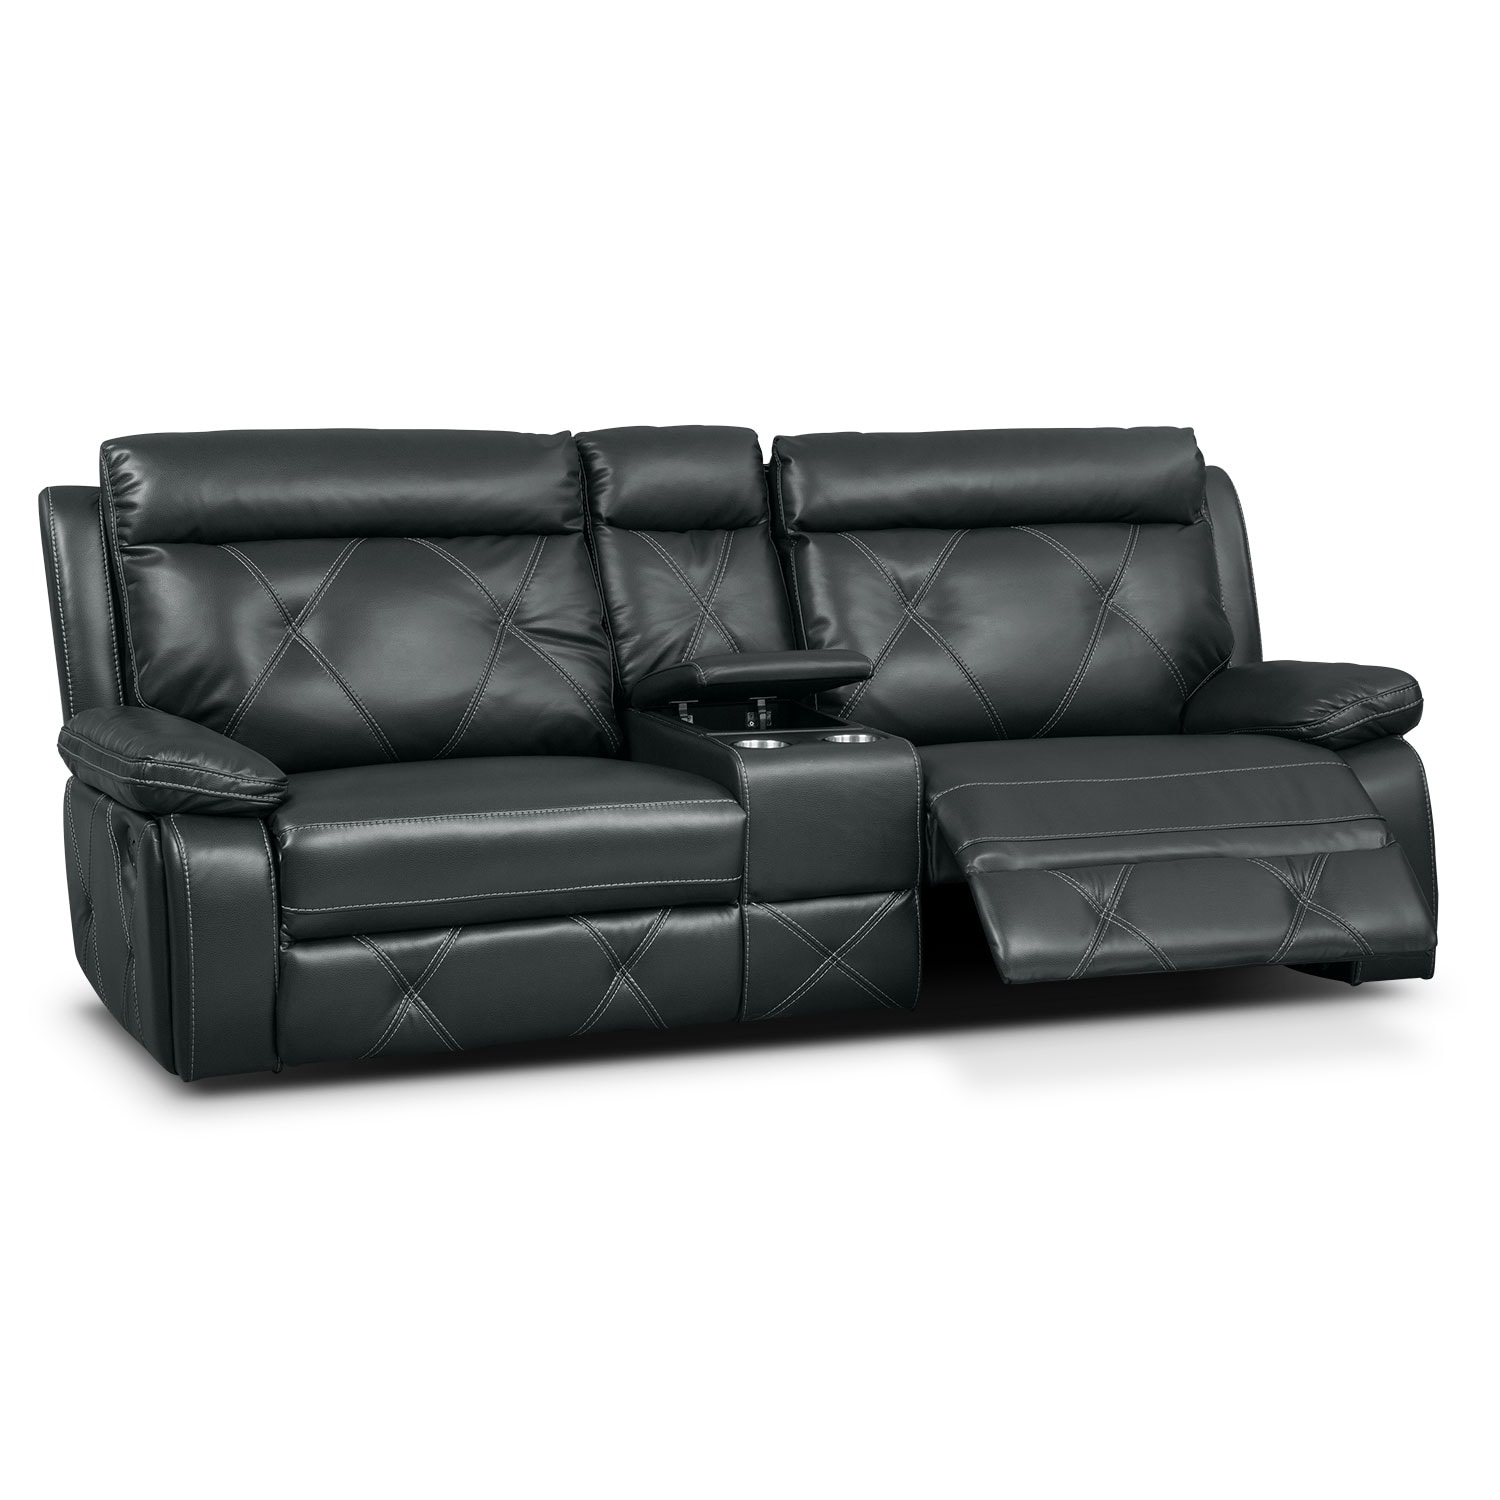 Dante 3 Piece Reclining Sofa With Console Charcoal